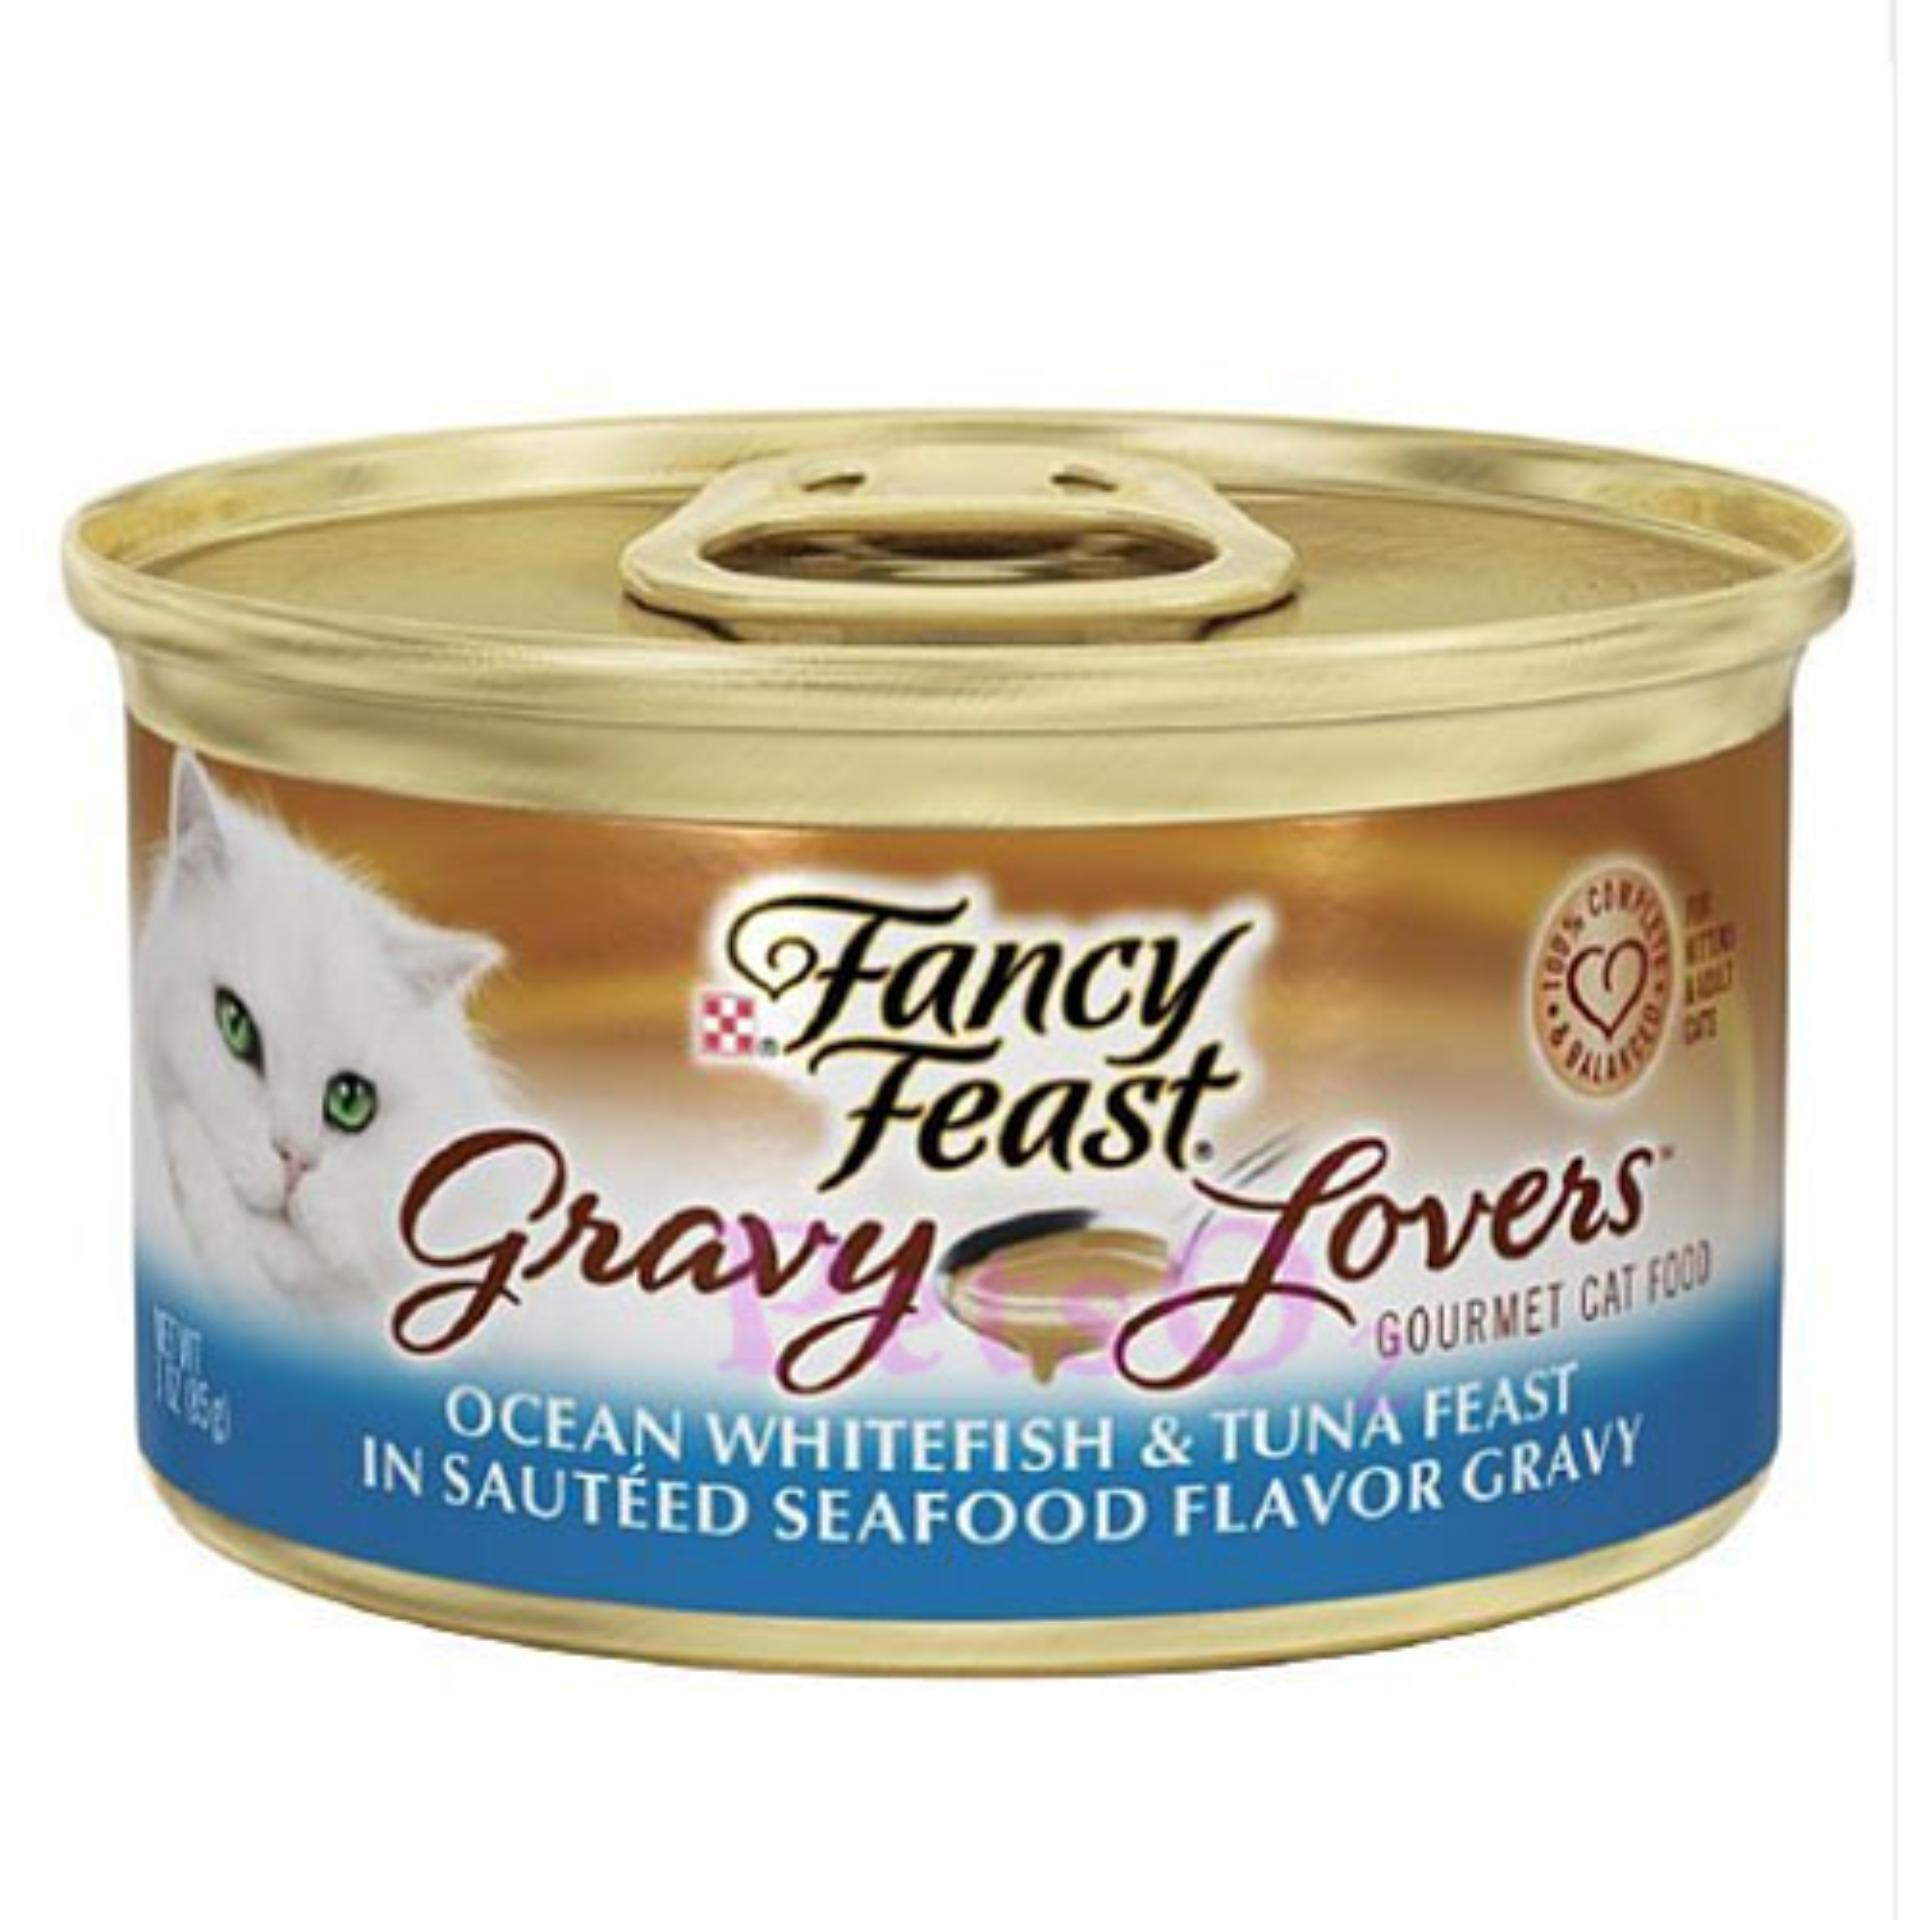 Where Can You Buy Fancy Feast Gravy Lovers Ocean Whitefish Tuna 85G X24